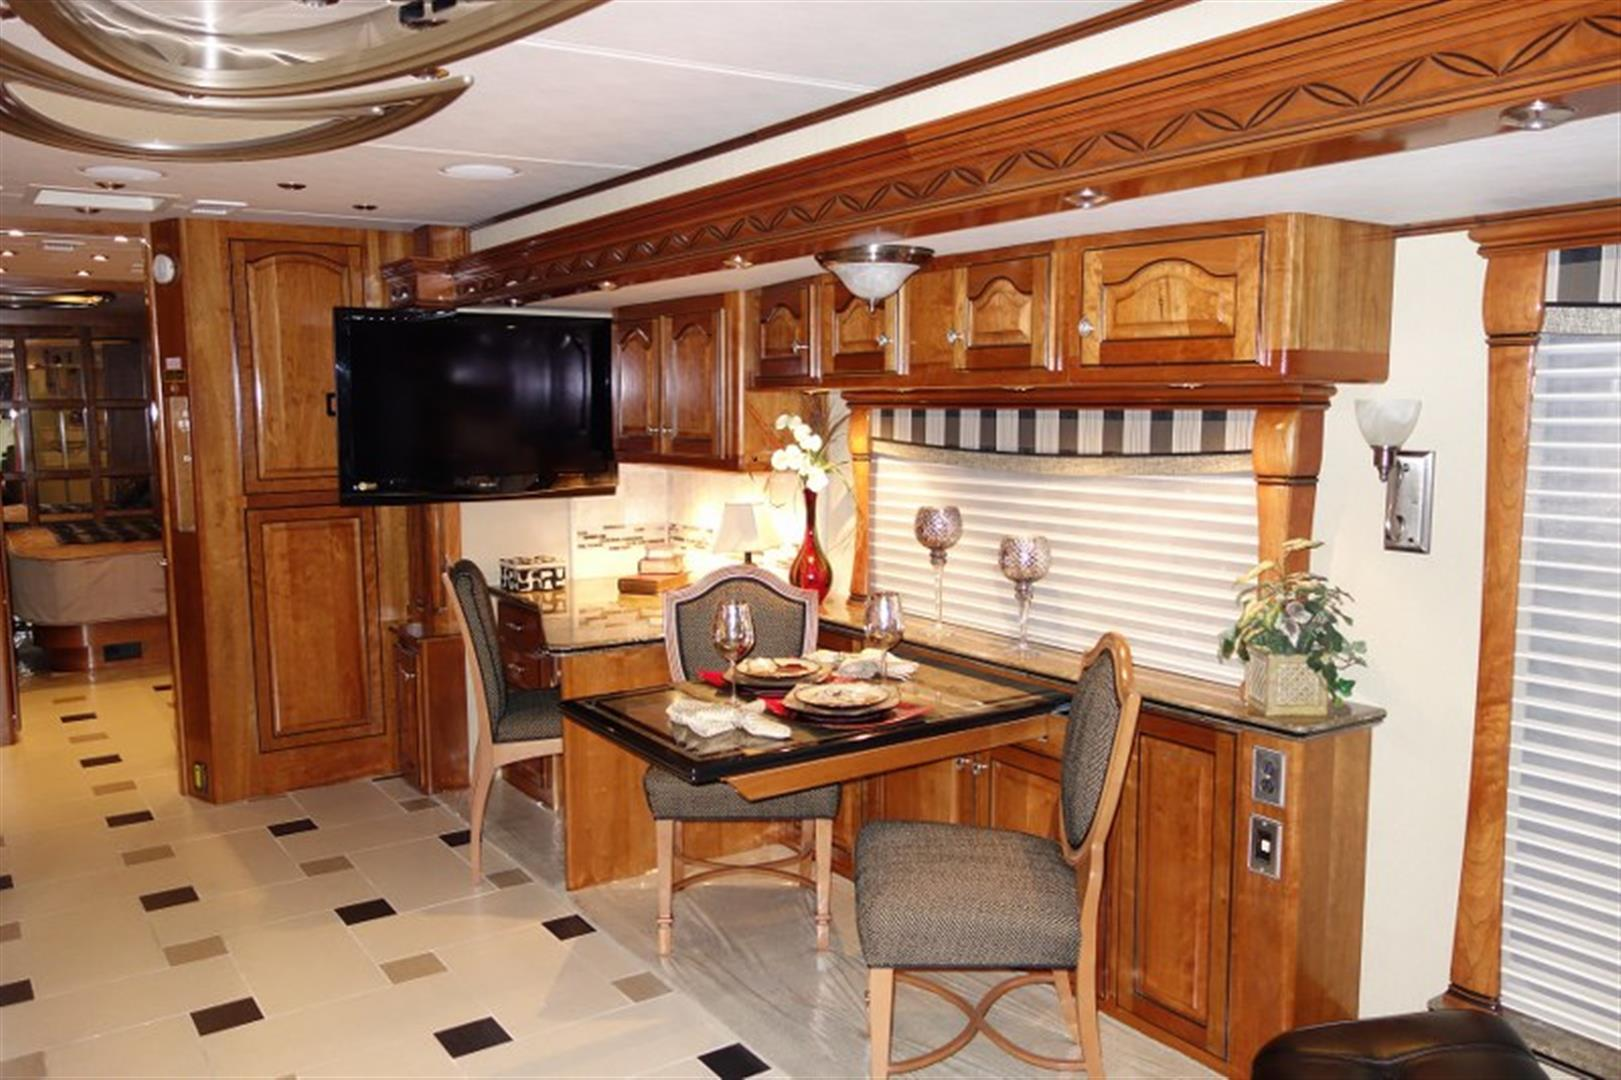 2009 country coach magna 2009 country coach magna floor plans country coach rv submited images